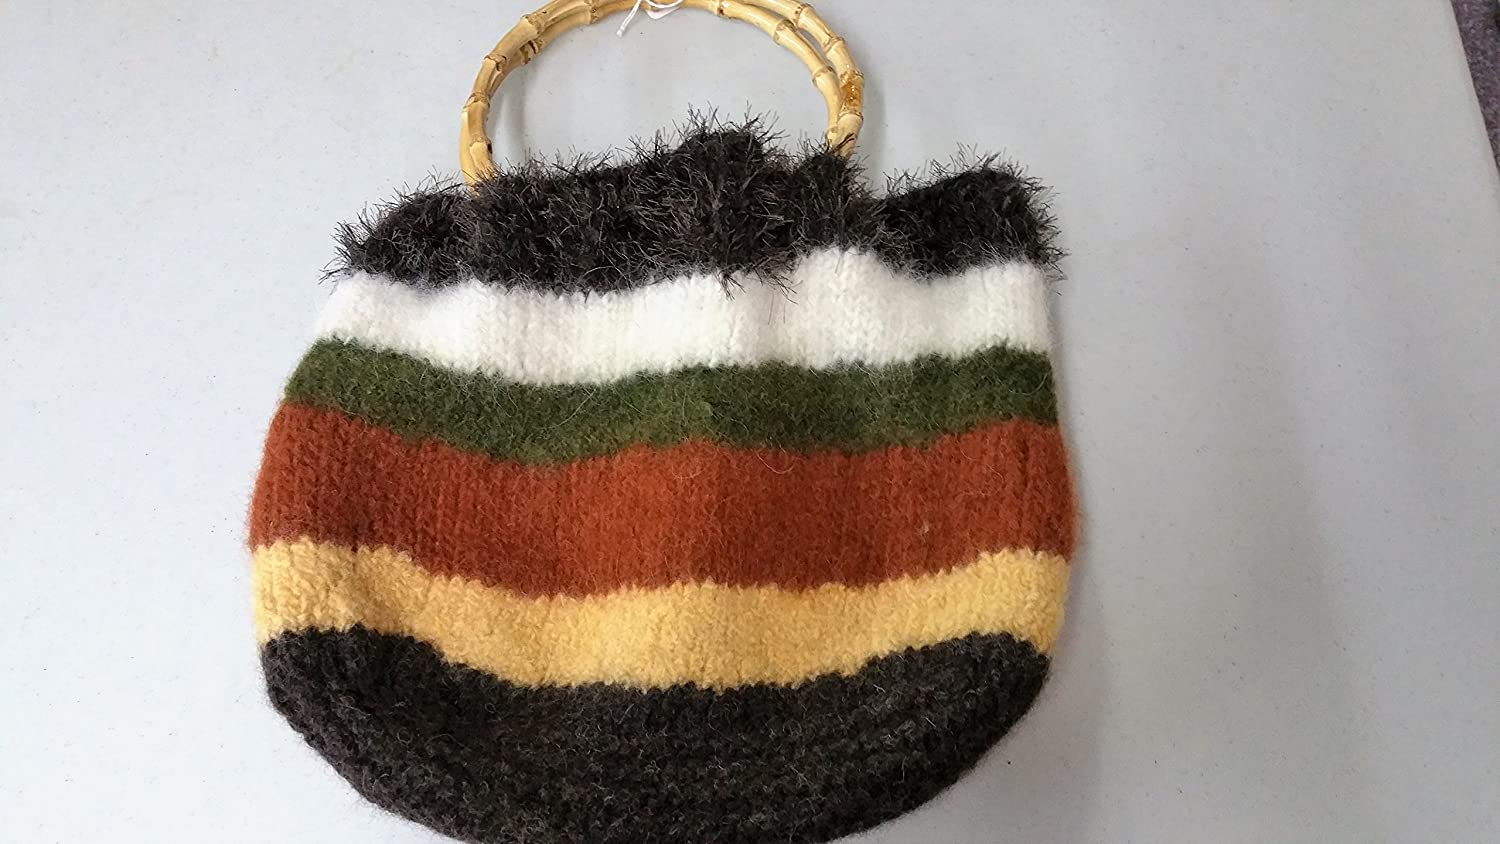 Hand Knitted San Francisco Mall Felted Satchel Choice in Brown and Stripes Multi